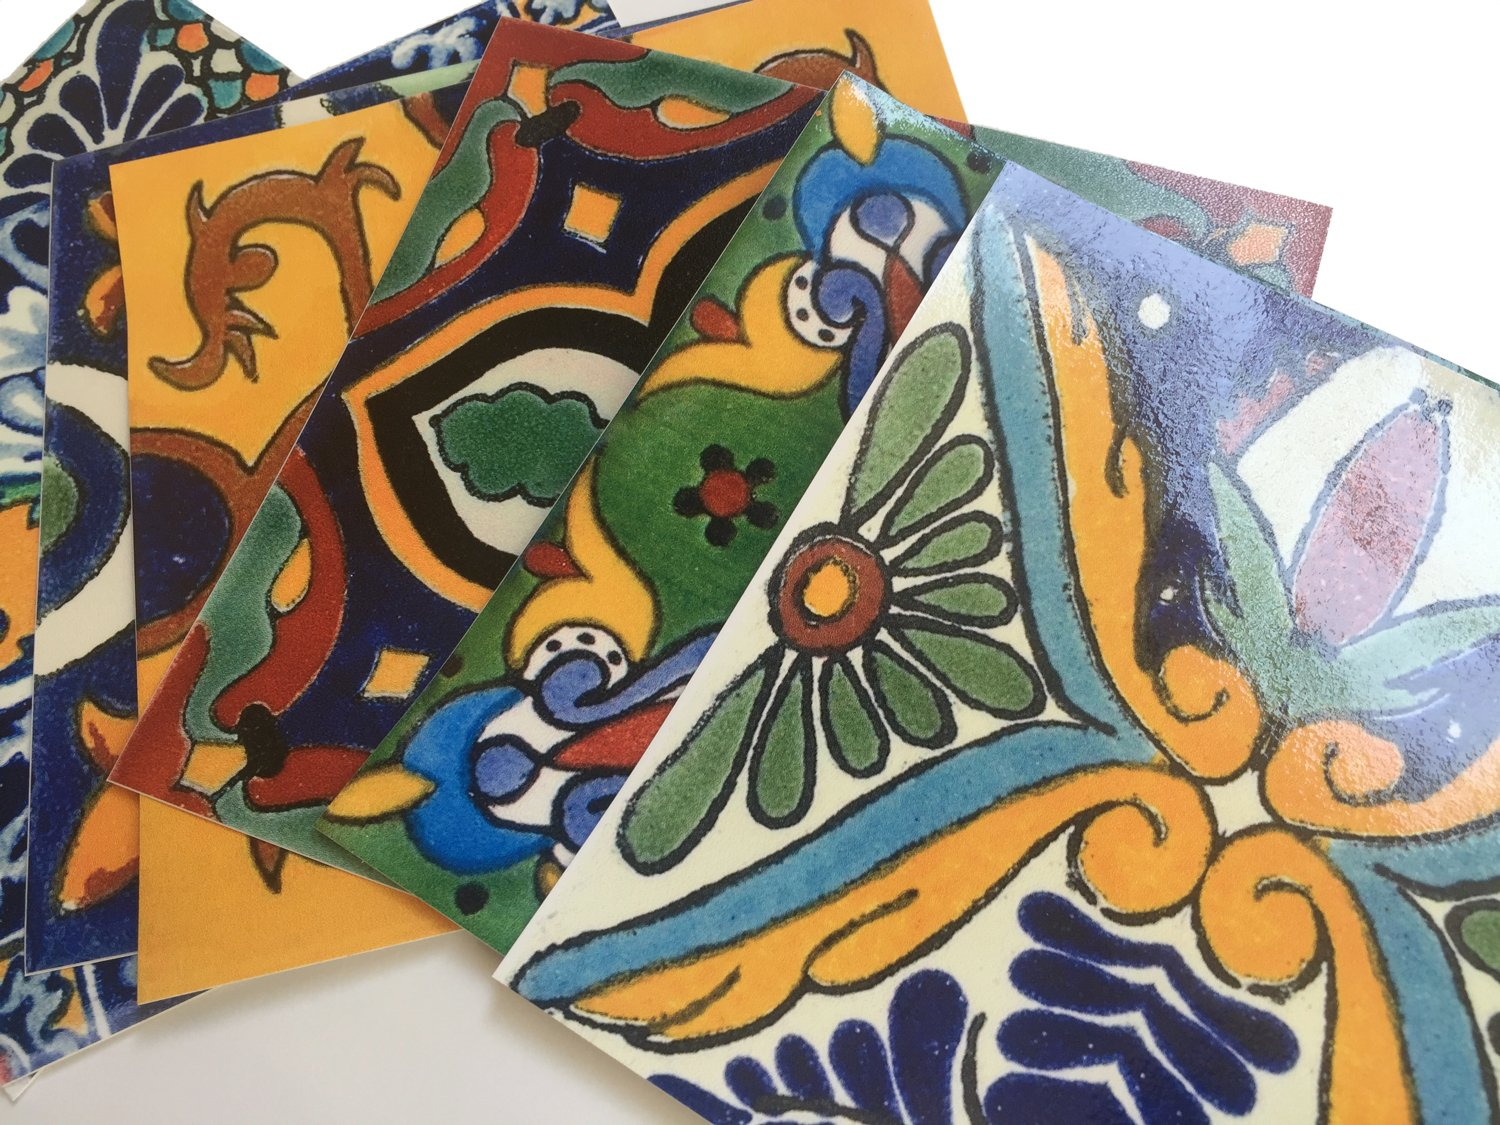 Tile Stickers Mexican Spanish 40pc 4-1/4in Peel and Stick for kitchen and bath Tr002-4Q by SnazzyDecal (Image #6)